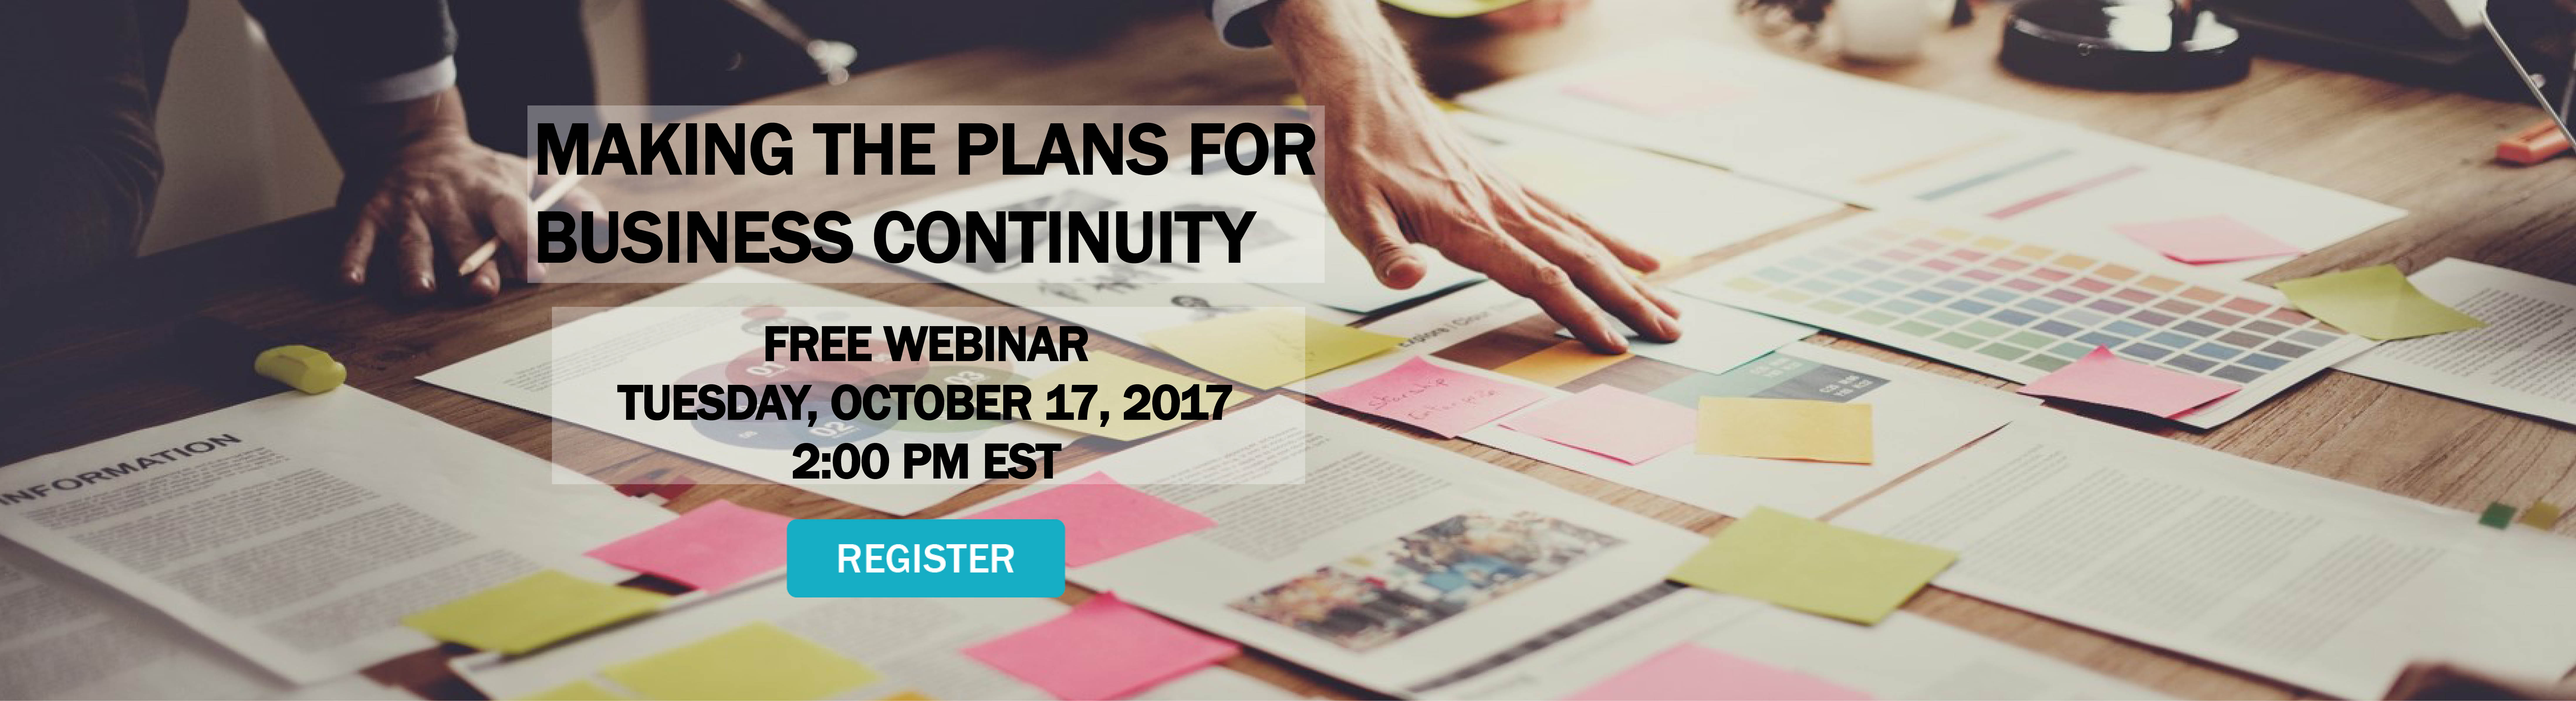 Making-the-Plans-for-Business-Continuity-Webinar-Hero-Image